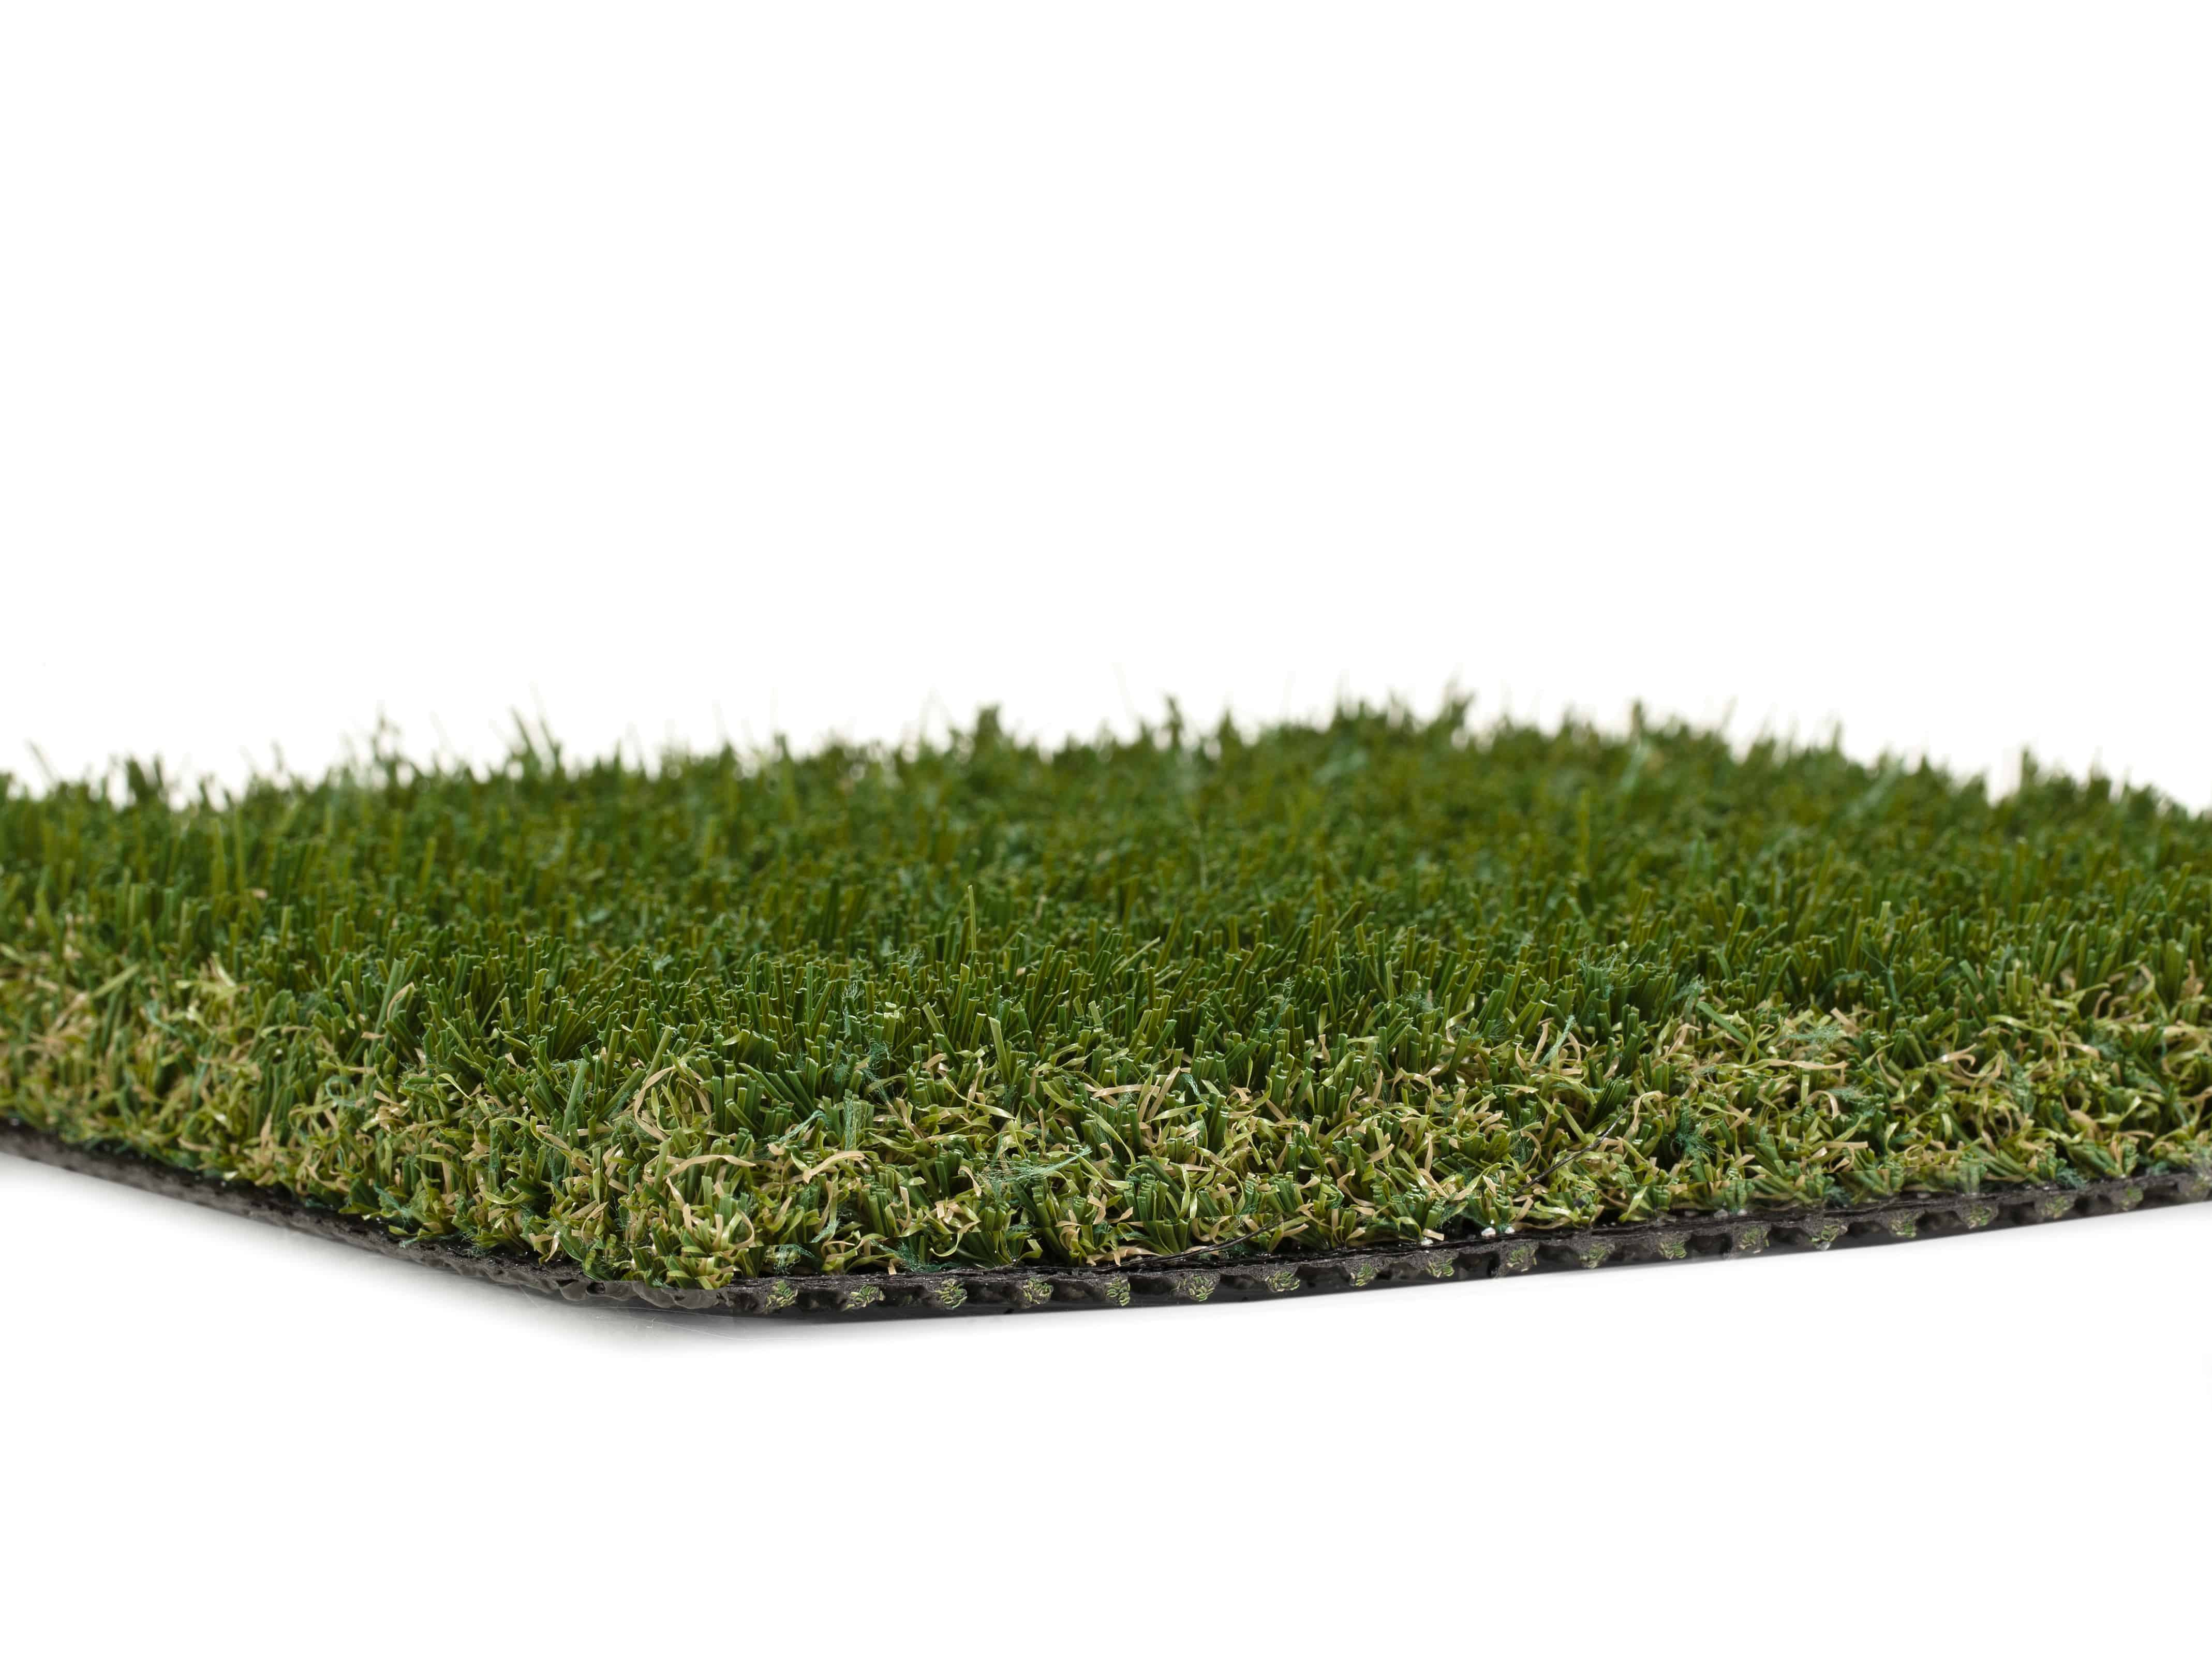 Natural Artificial Turf Real Looking Artificial Turf